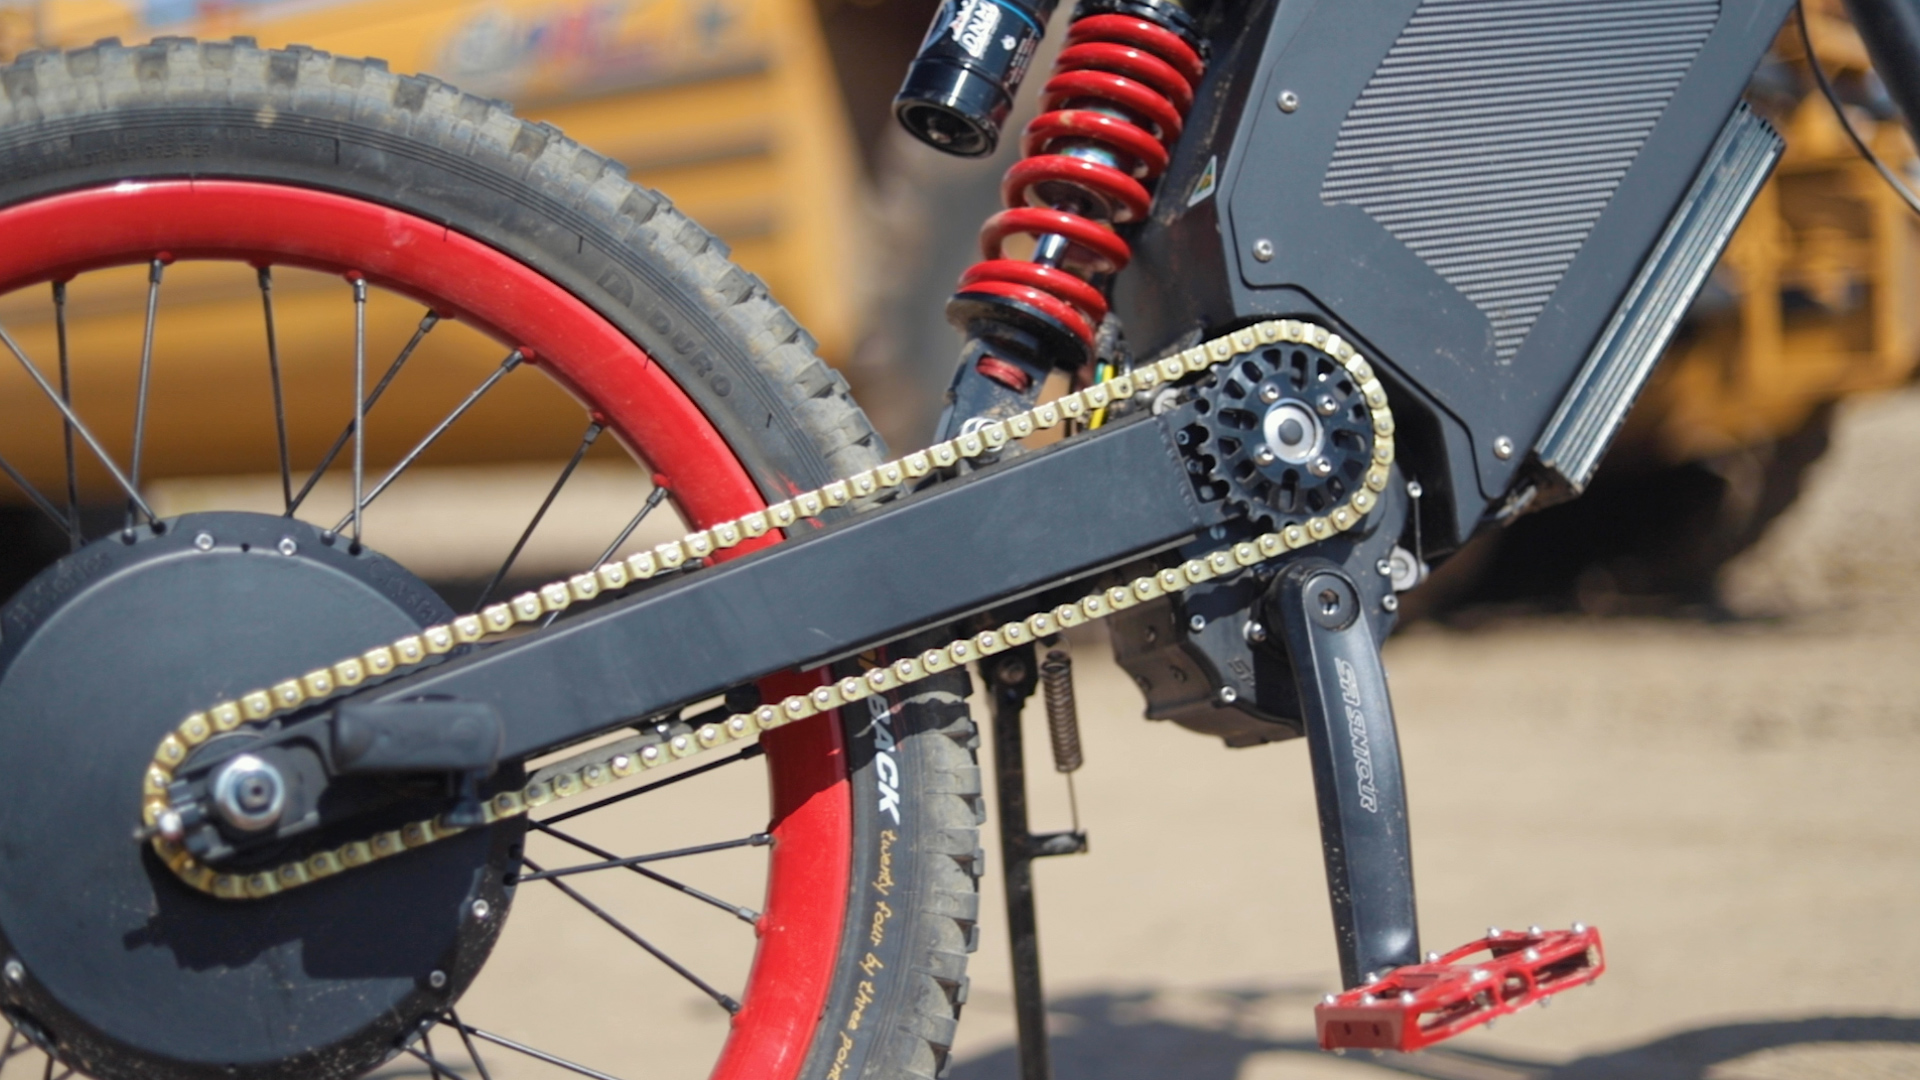 electrified-reviews-stealth-b52-bomber-electric-bike-review-chain.jpg